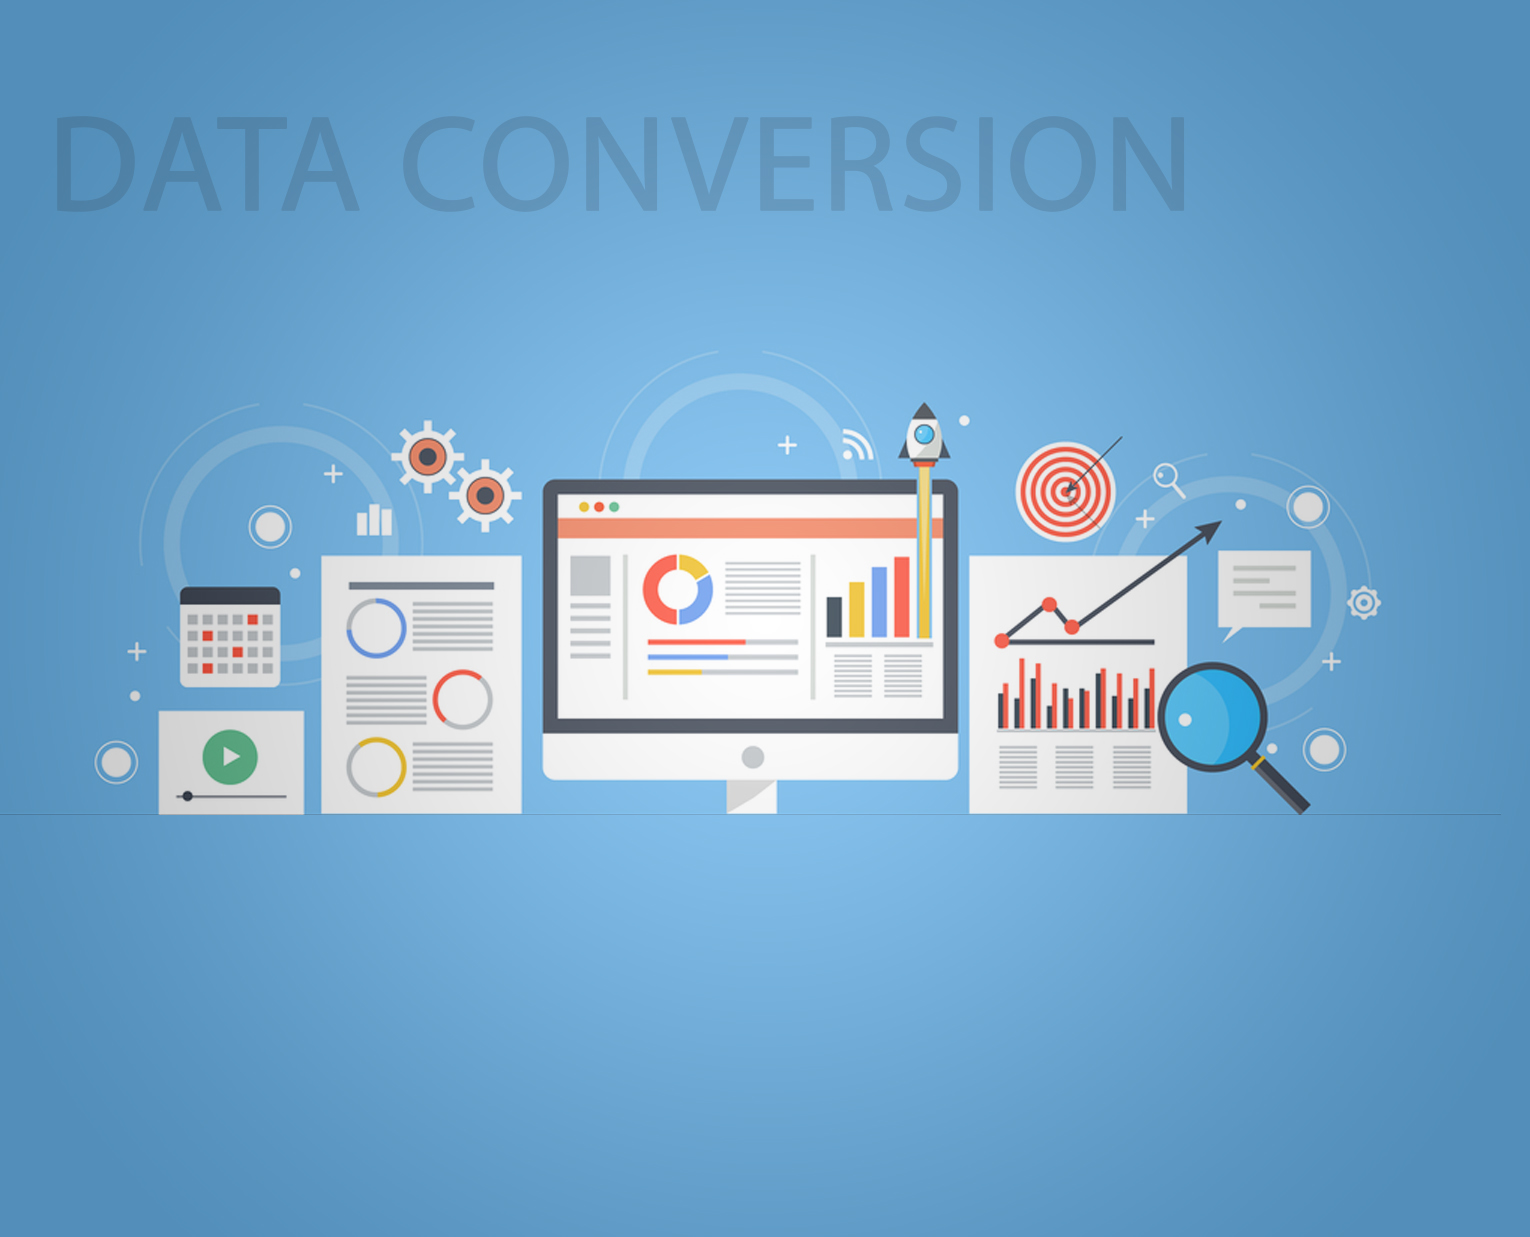 Tips to successfully convert data benefitting your business